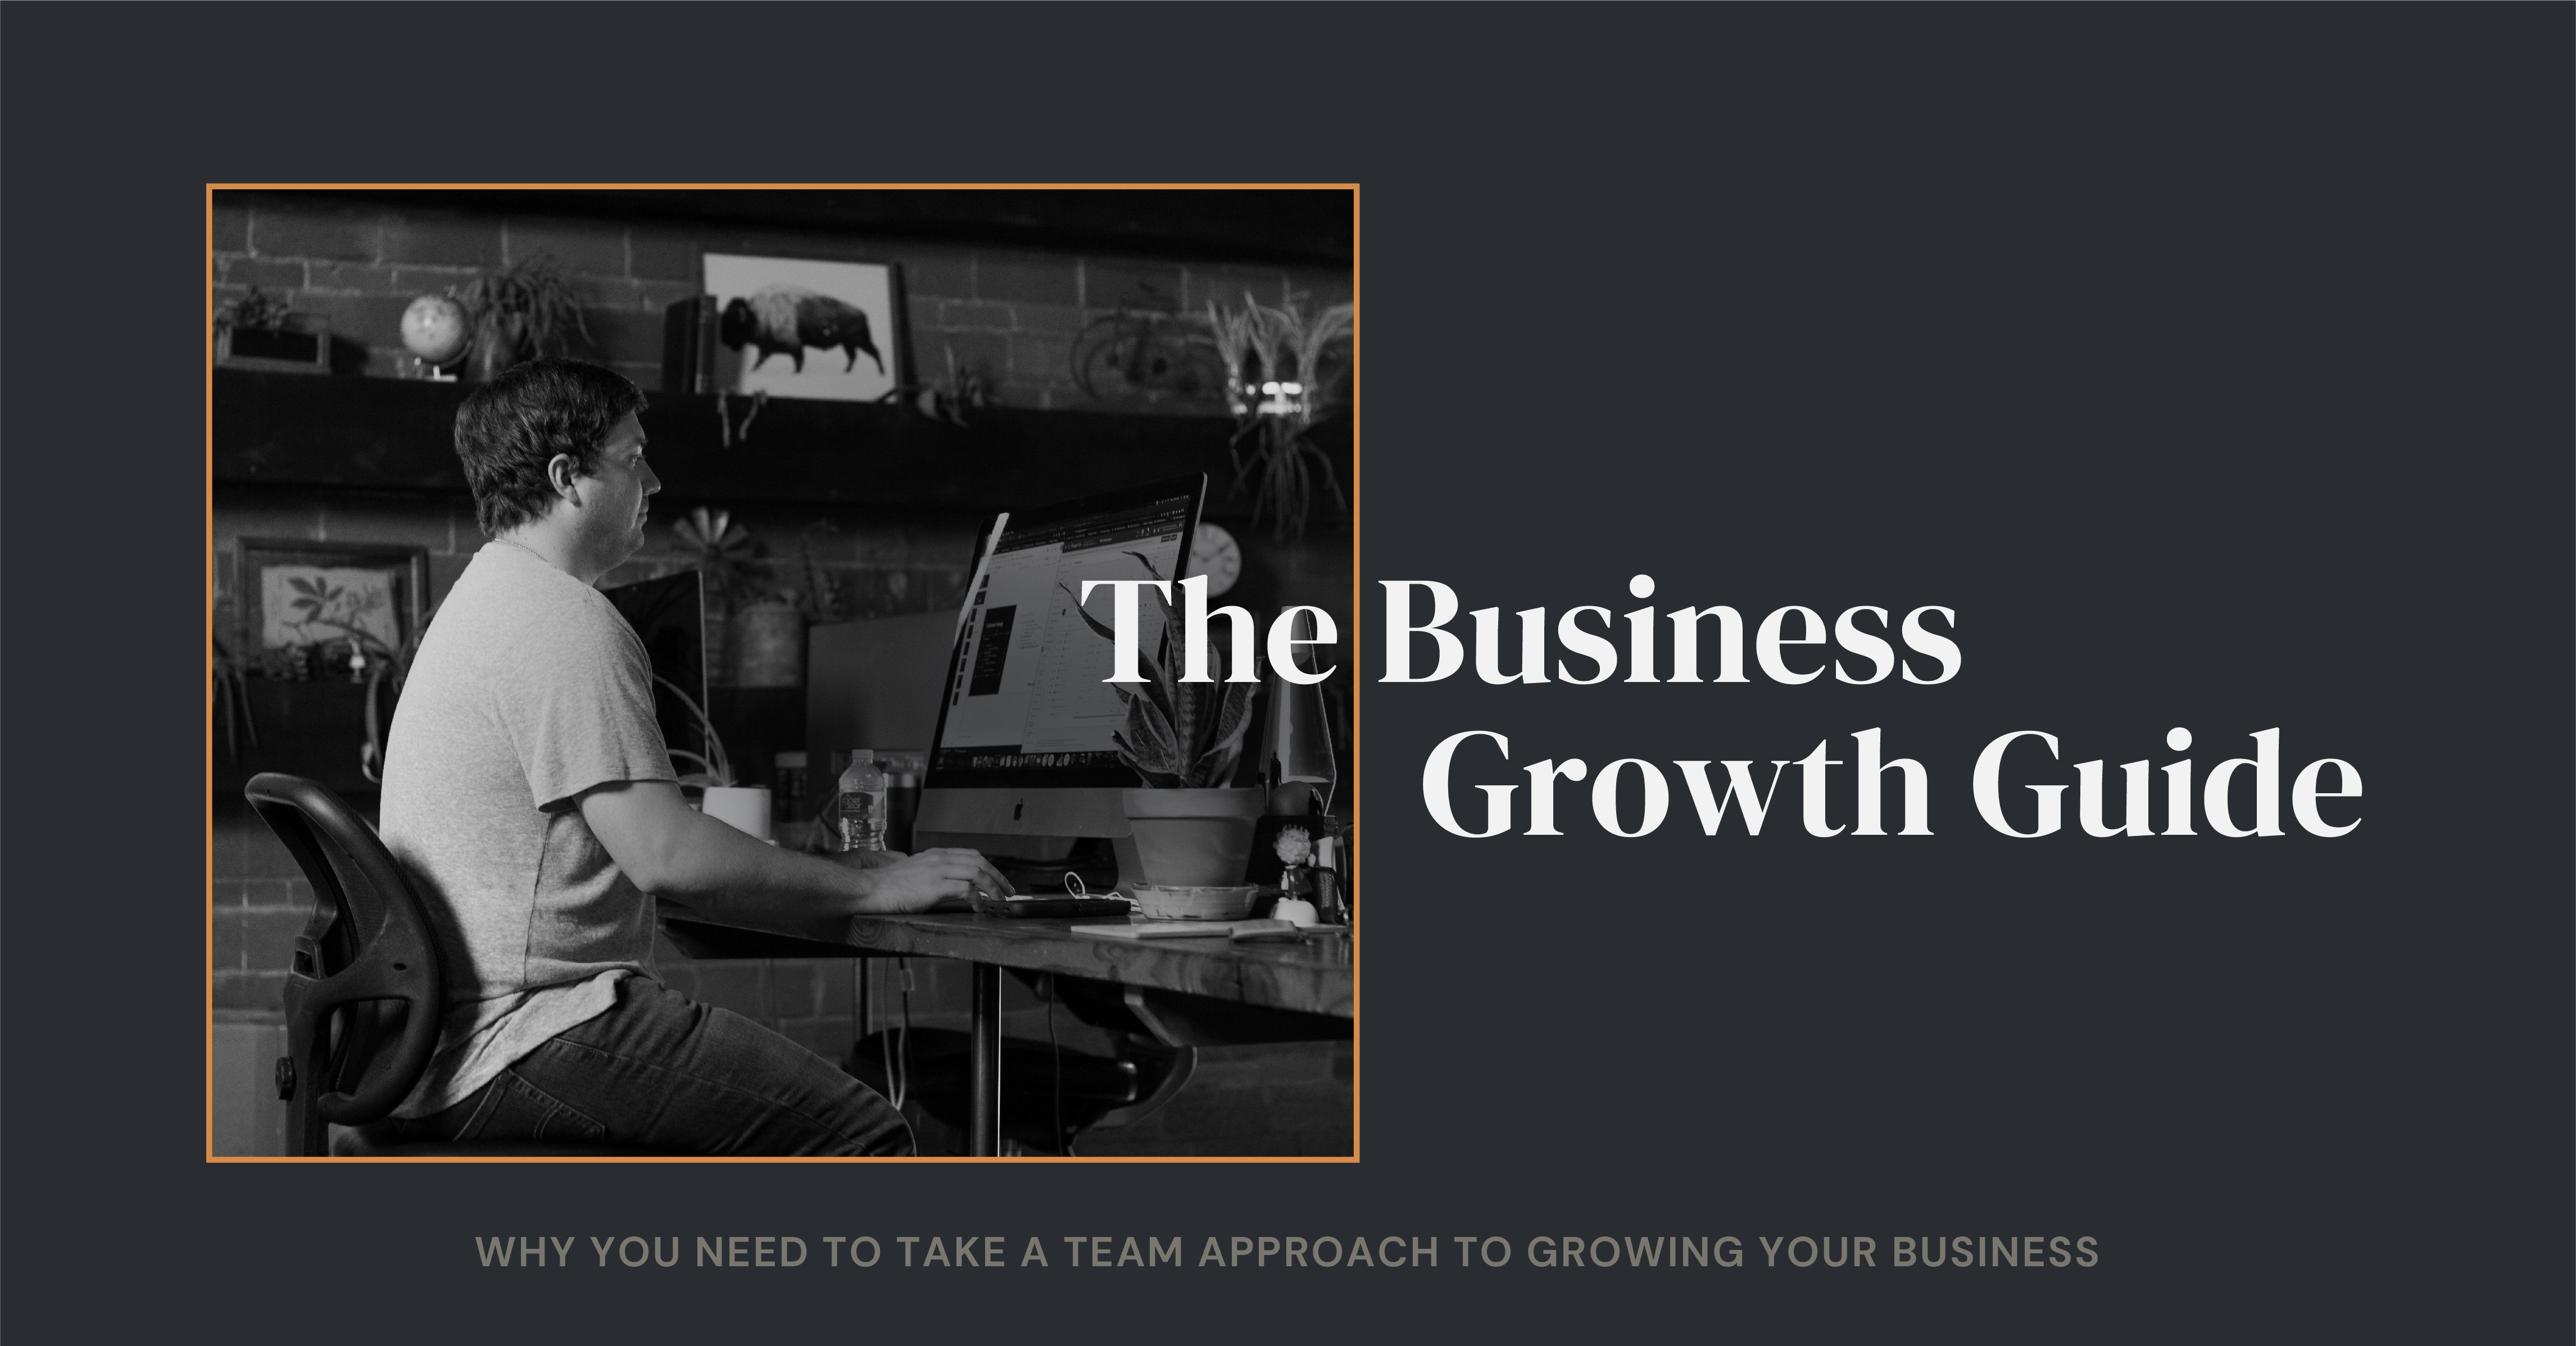 The Business Growth Guide